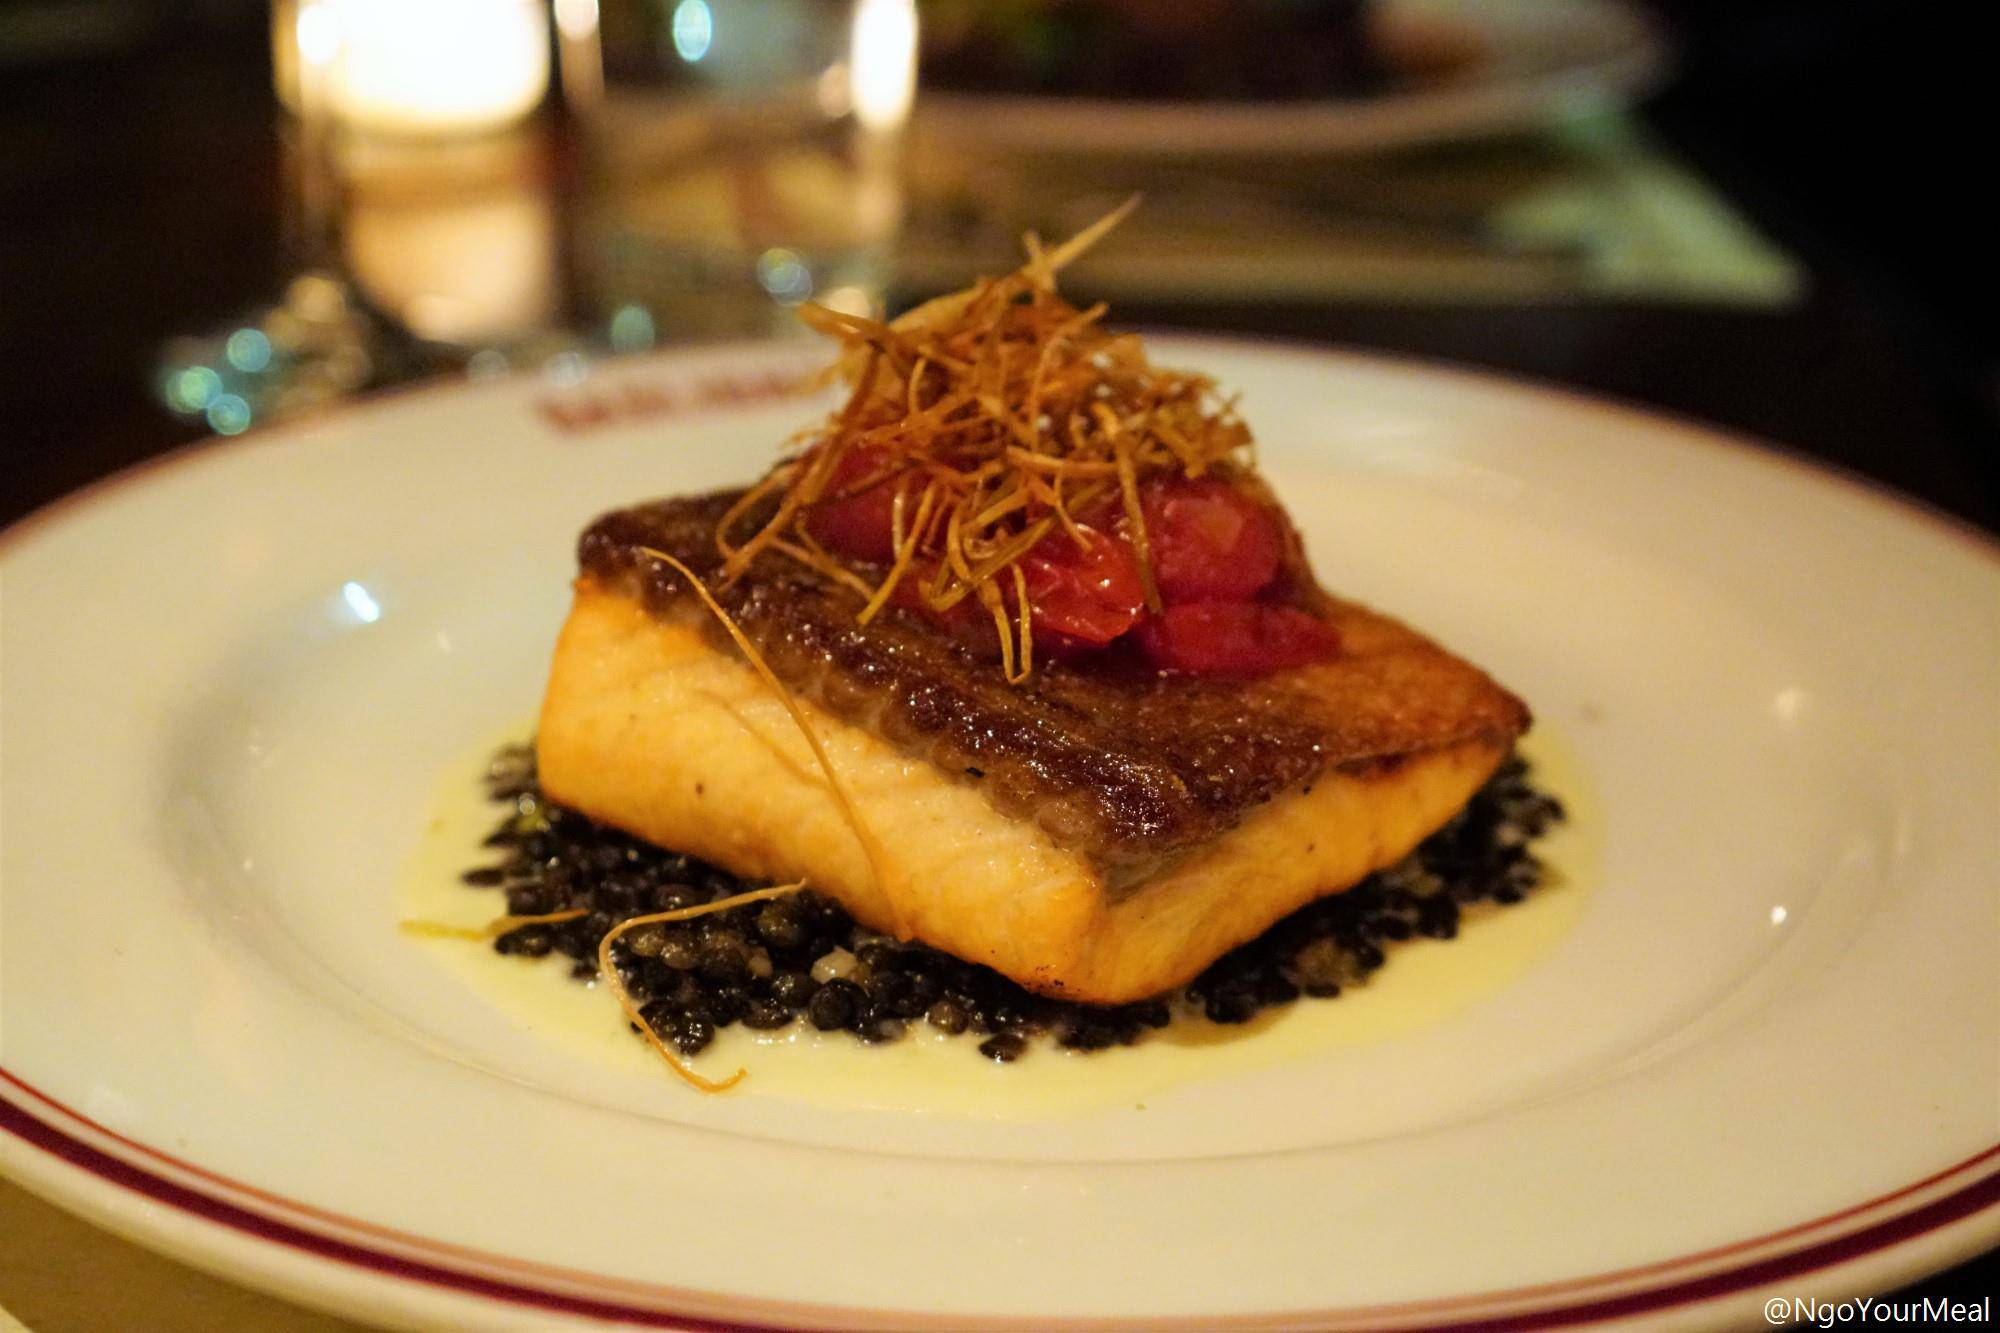 Pan-Roasted Salmon with French Lentils, Leek Soubise, Blistered Cherry Tomatoes, Crispy Leeks at Gaslight in Boston